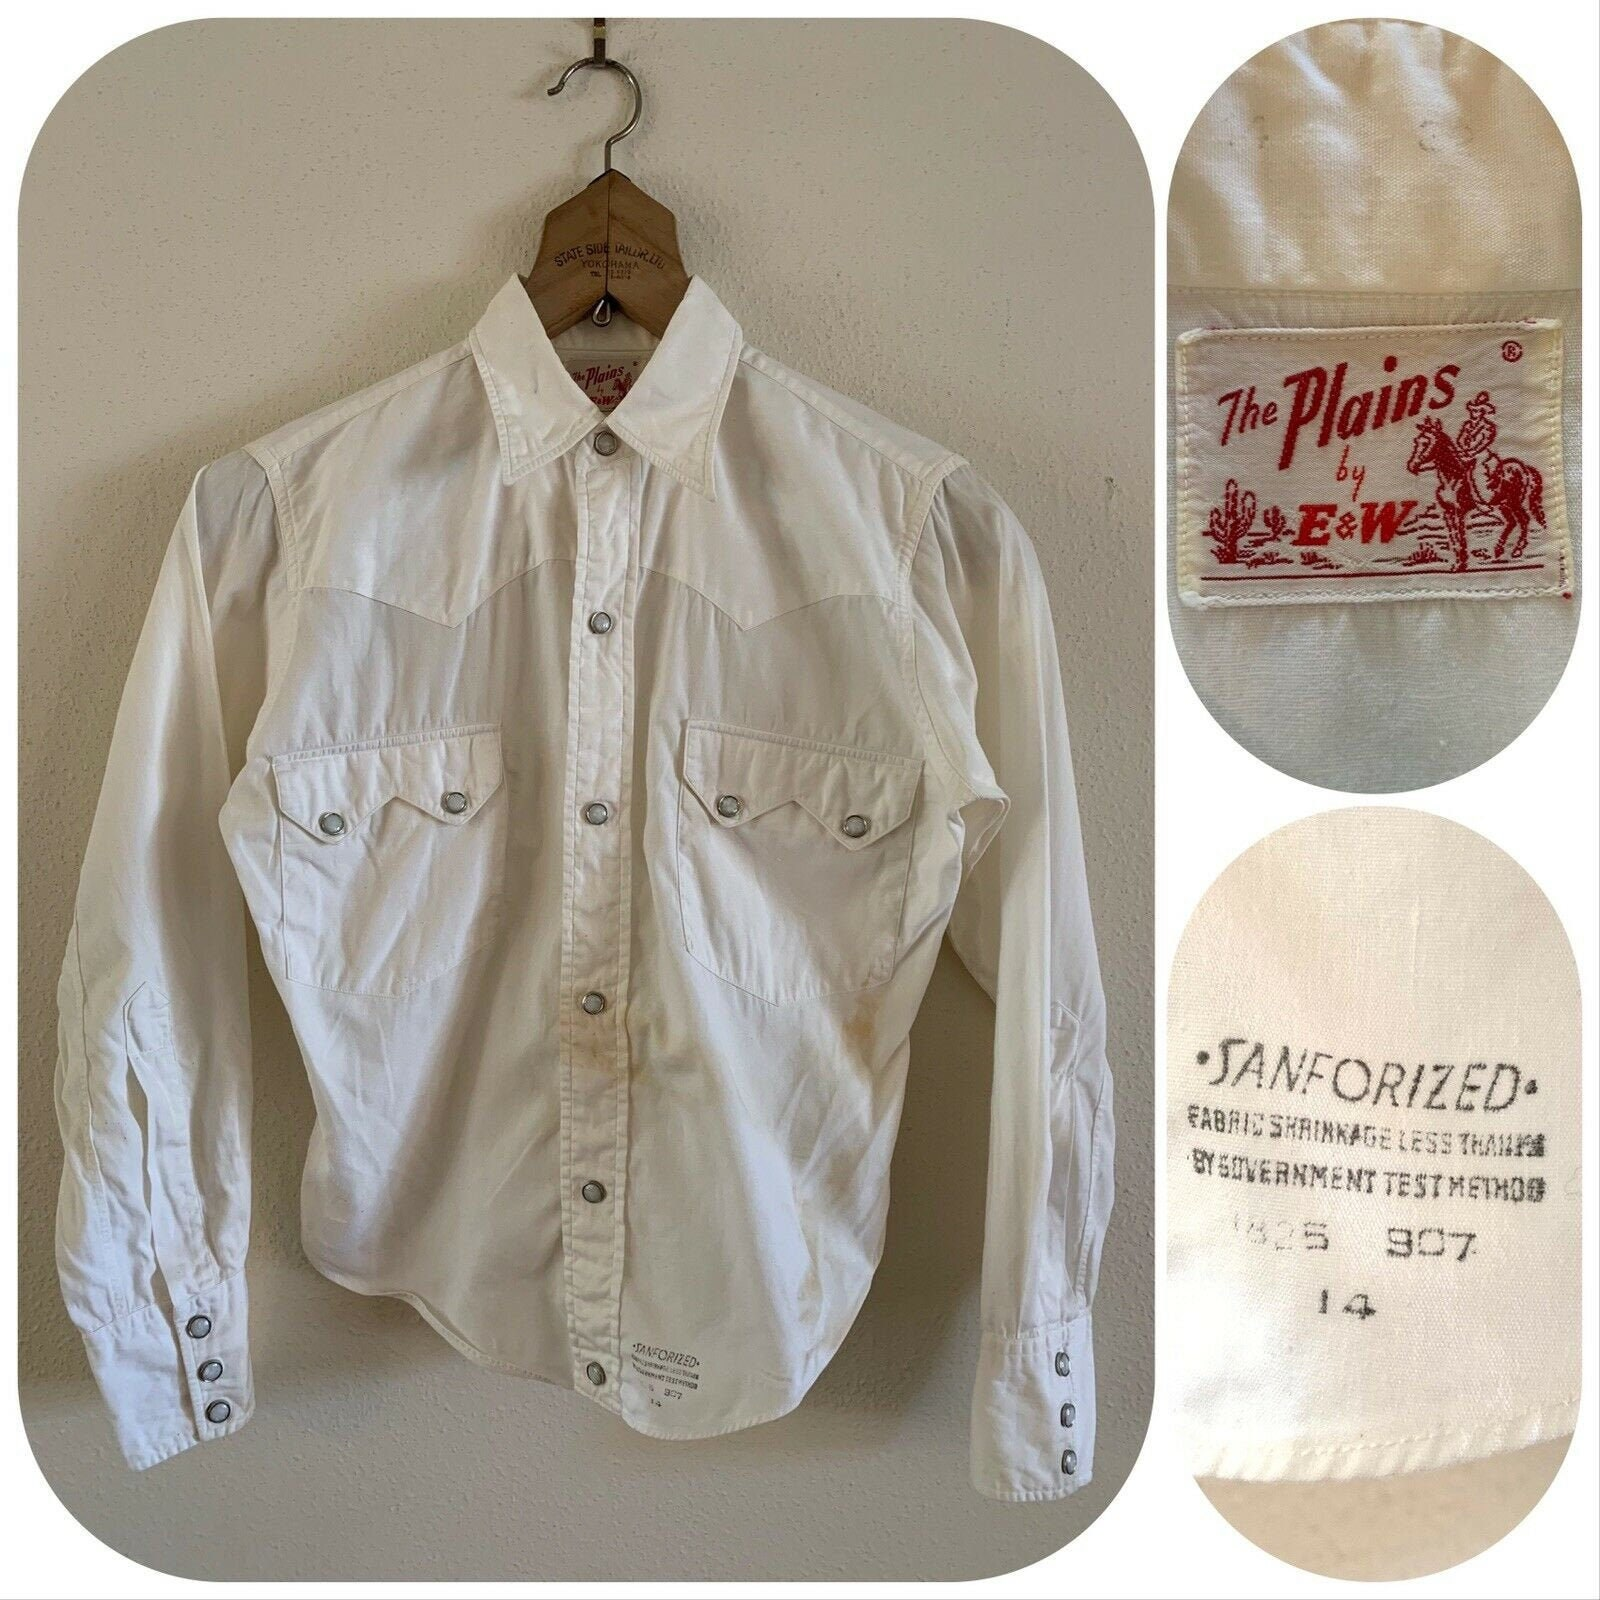 1950s Mens Hats | 50s Vintage Men's Hats 50S The Plains By Ew Womens Sawtooth Pearl Snap Western Shirt Rodeo Ranch Cowgirl Made in Usa Rockabilly Sanforized Chore Equestrian $65.00 AT vintagedancer.com